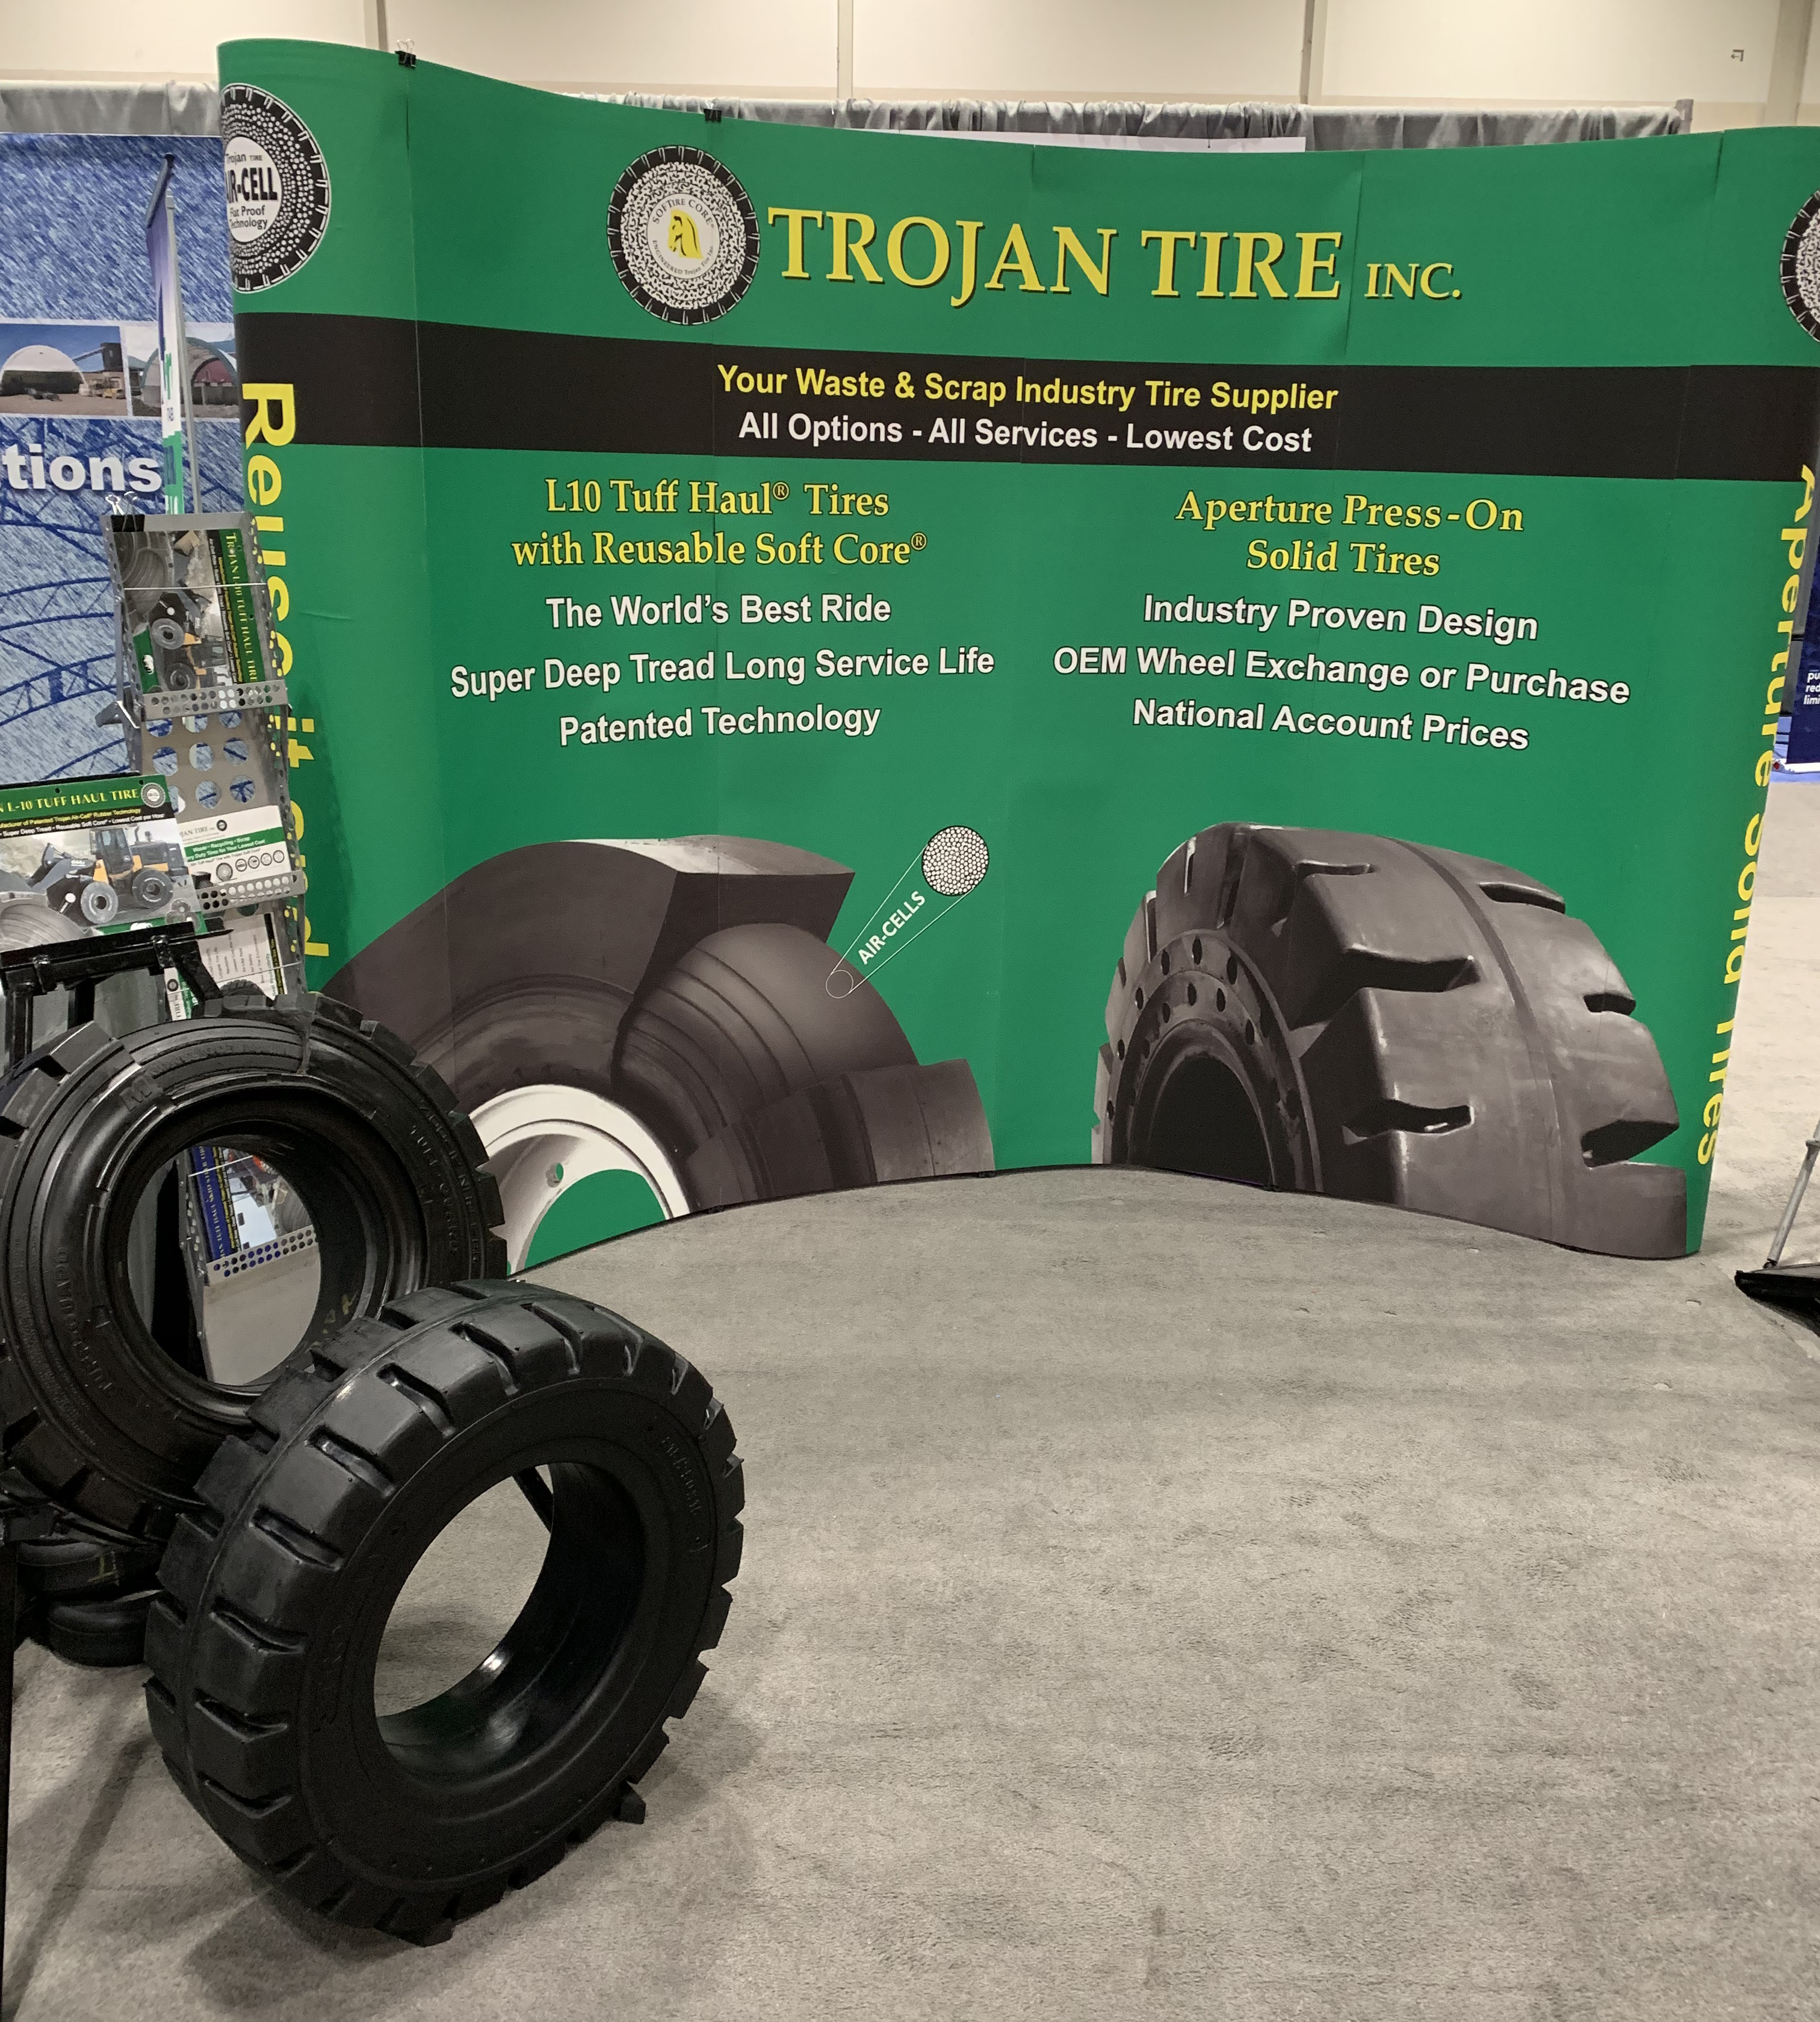 Tires Near Me Open Now >> 2019 Waste Recycling Expo Canada Open Trojan Tire Inc